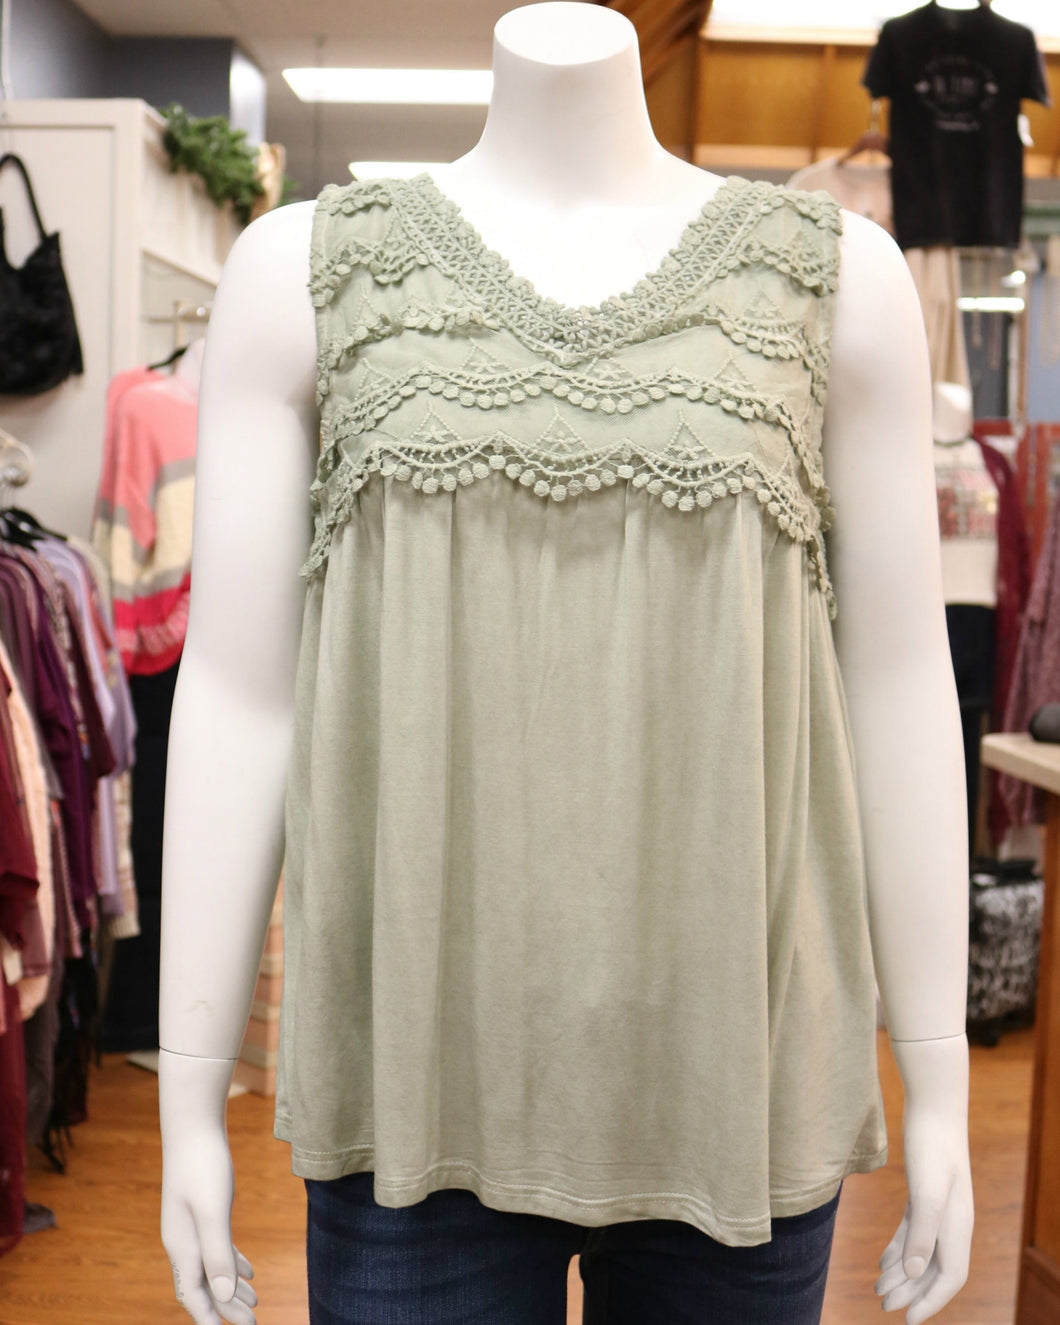 Slvless Top w Front and Back Lace Trim V Neck Detail